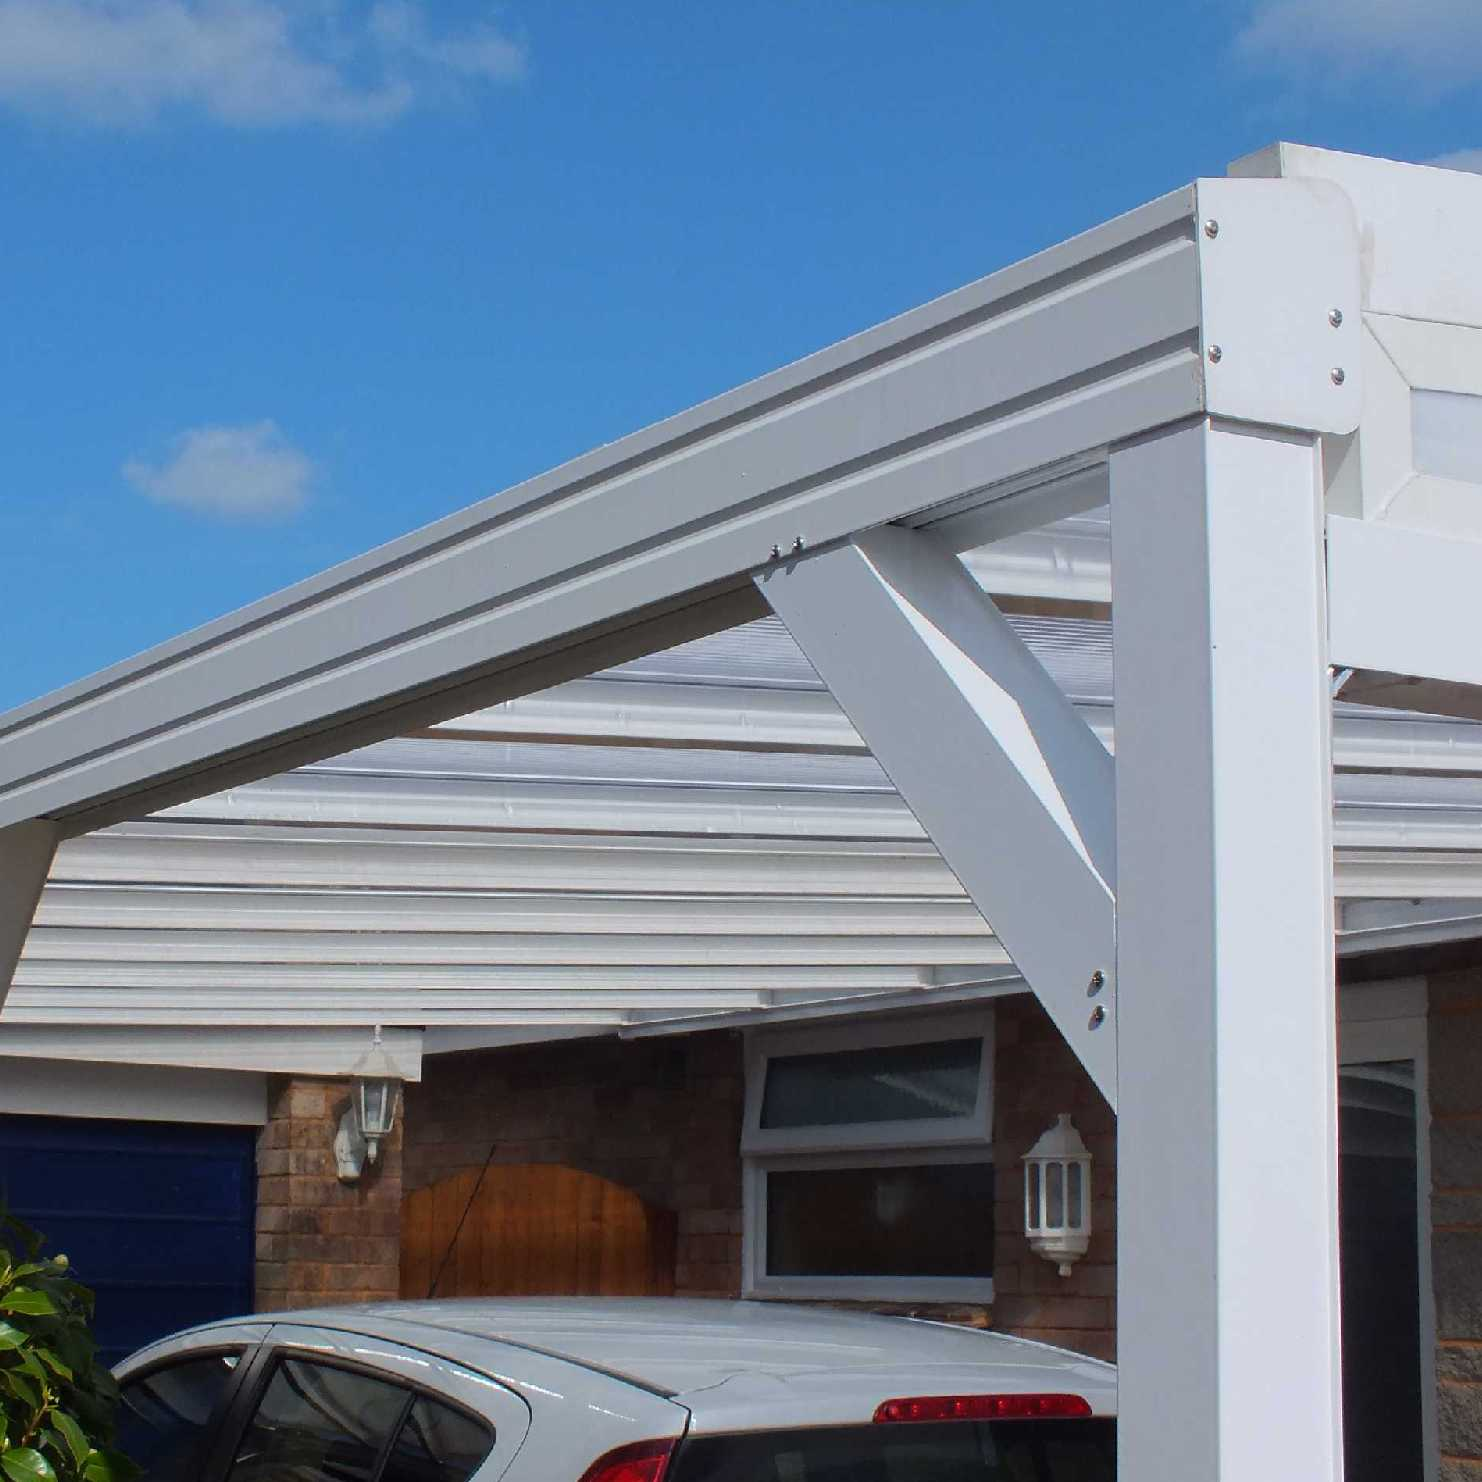 Great deals on Omega Smart Lean-To Canopy with 16mm Polycarbonate Glazing - 6.0m (W) x 3.0m (P), (3) Supporting Posts